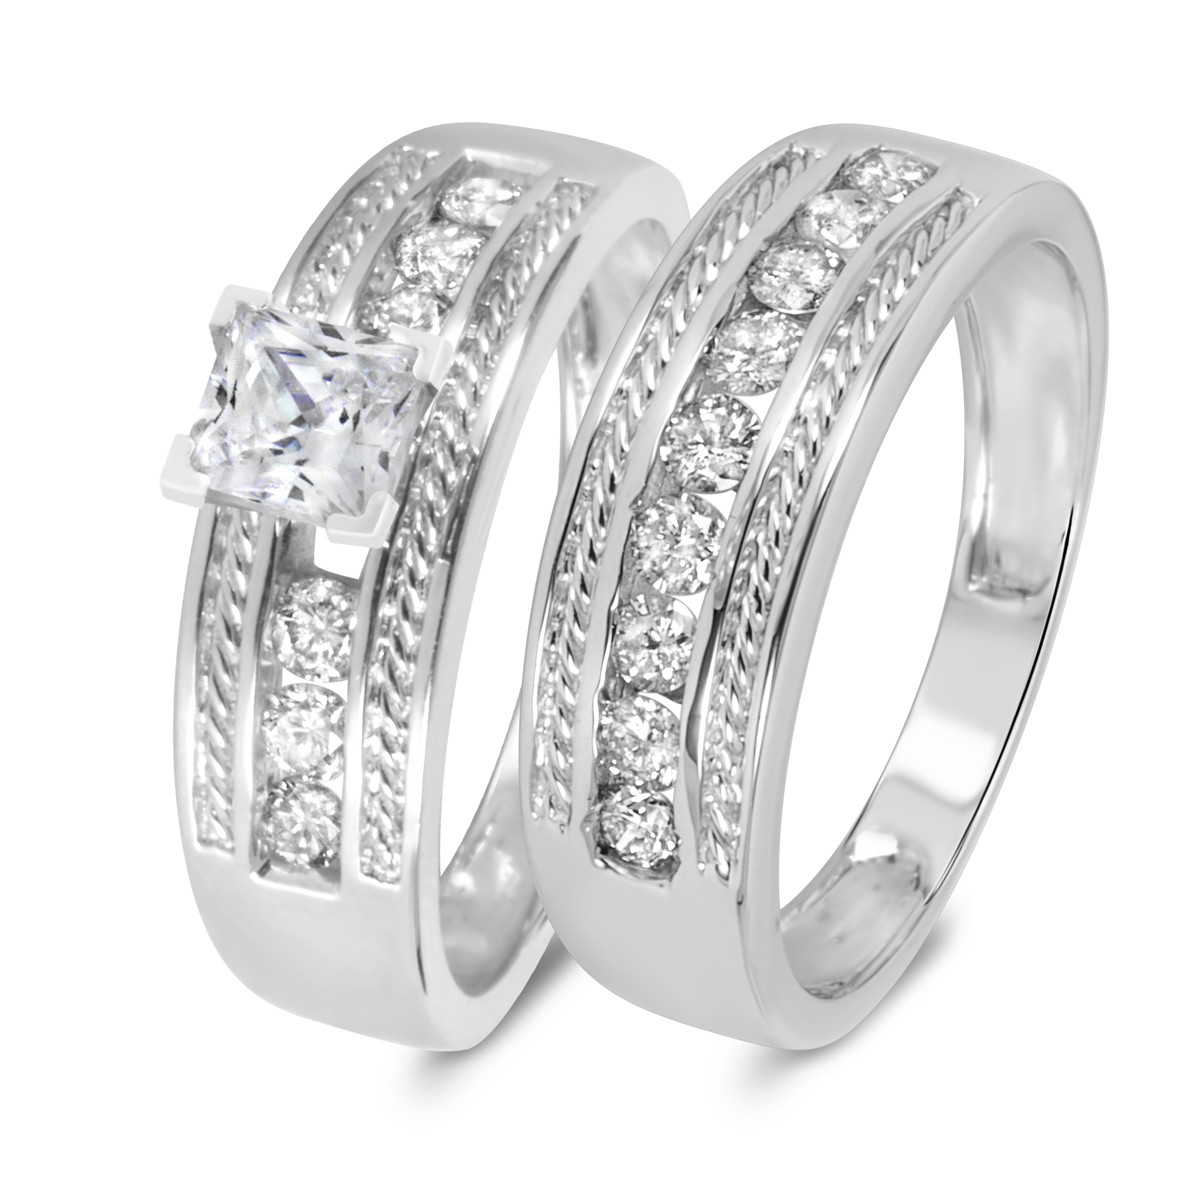 1 1/6 CT. T.W. Diamond Women's Bridal Wedding Ring Set 14K White Gold